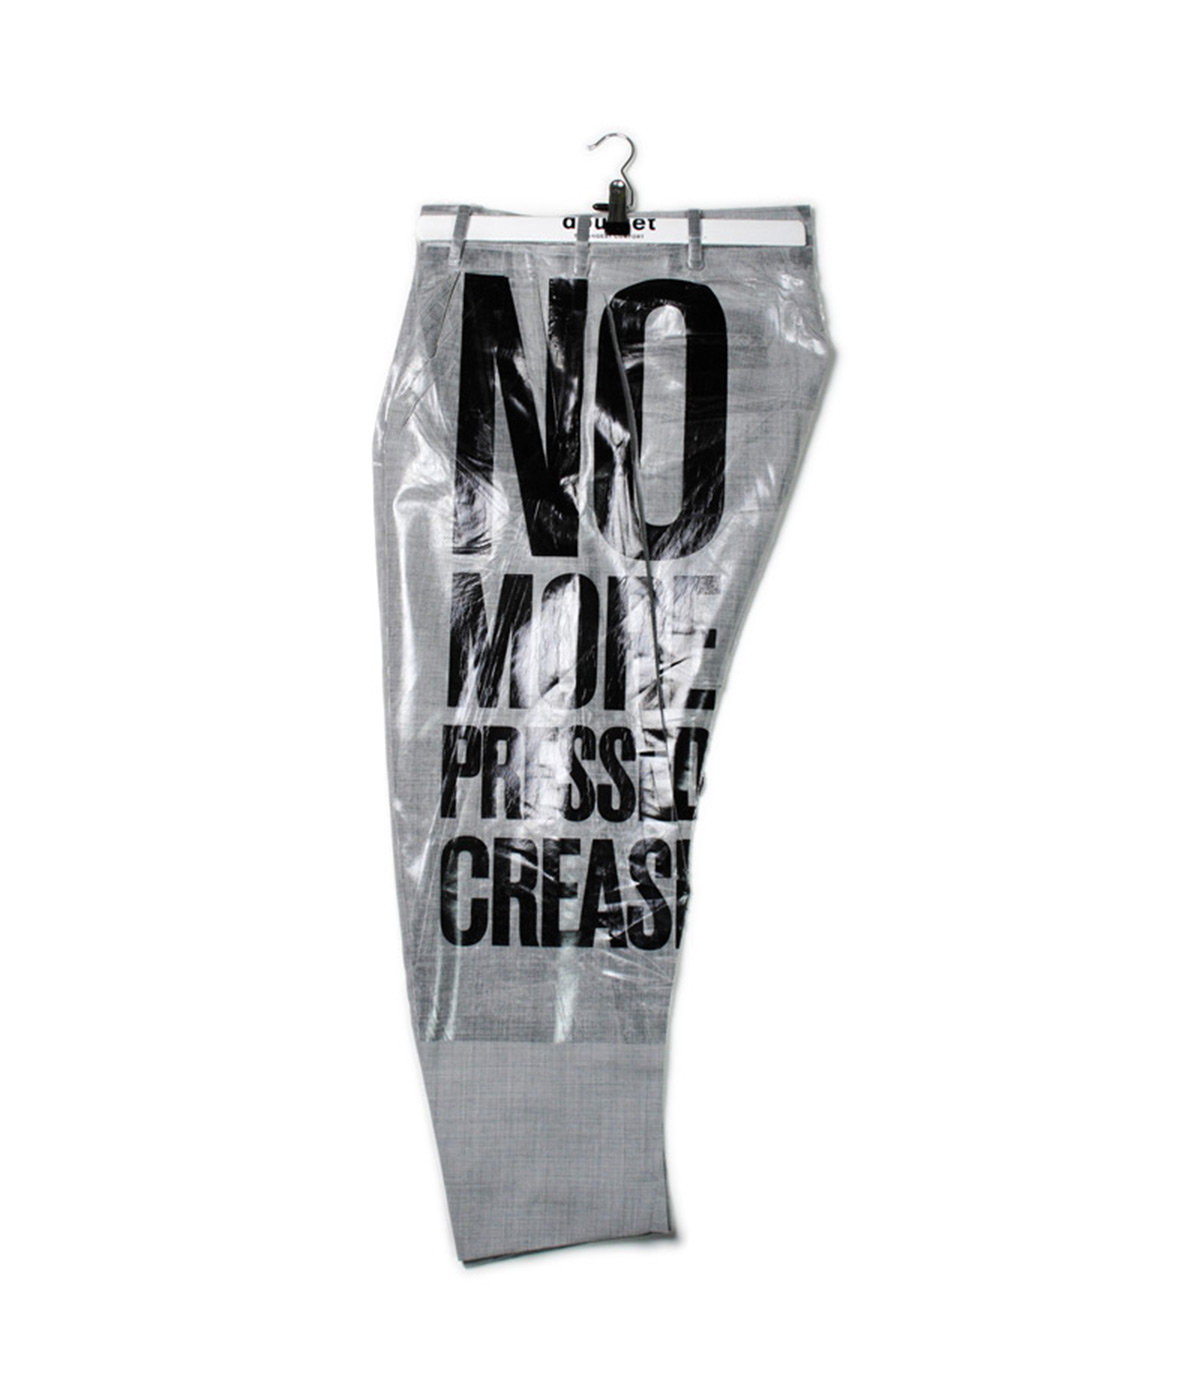 2D PACKAGED 3D CUTTING TROUSERS SAYS SLOGAN